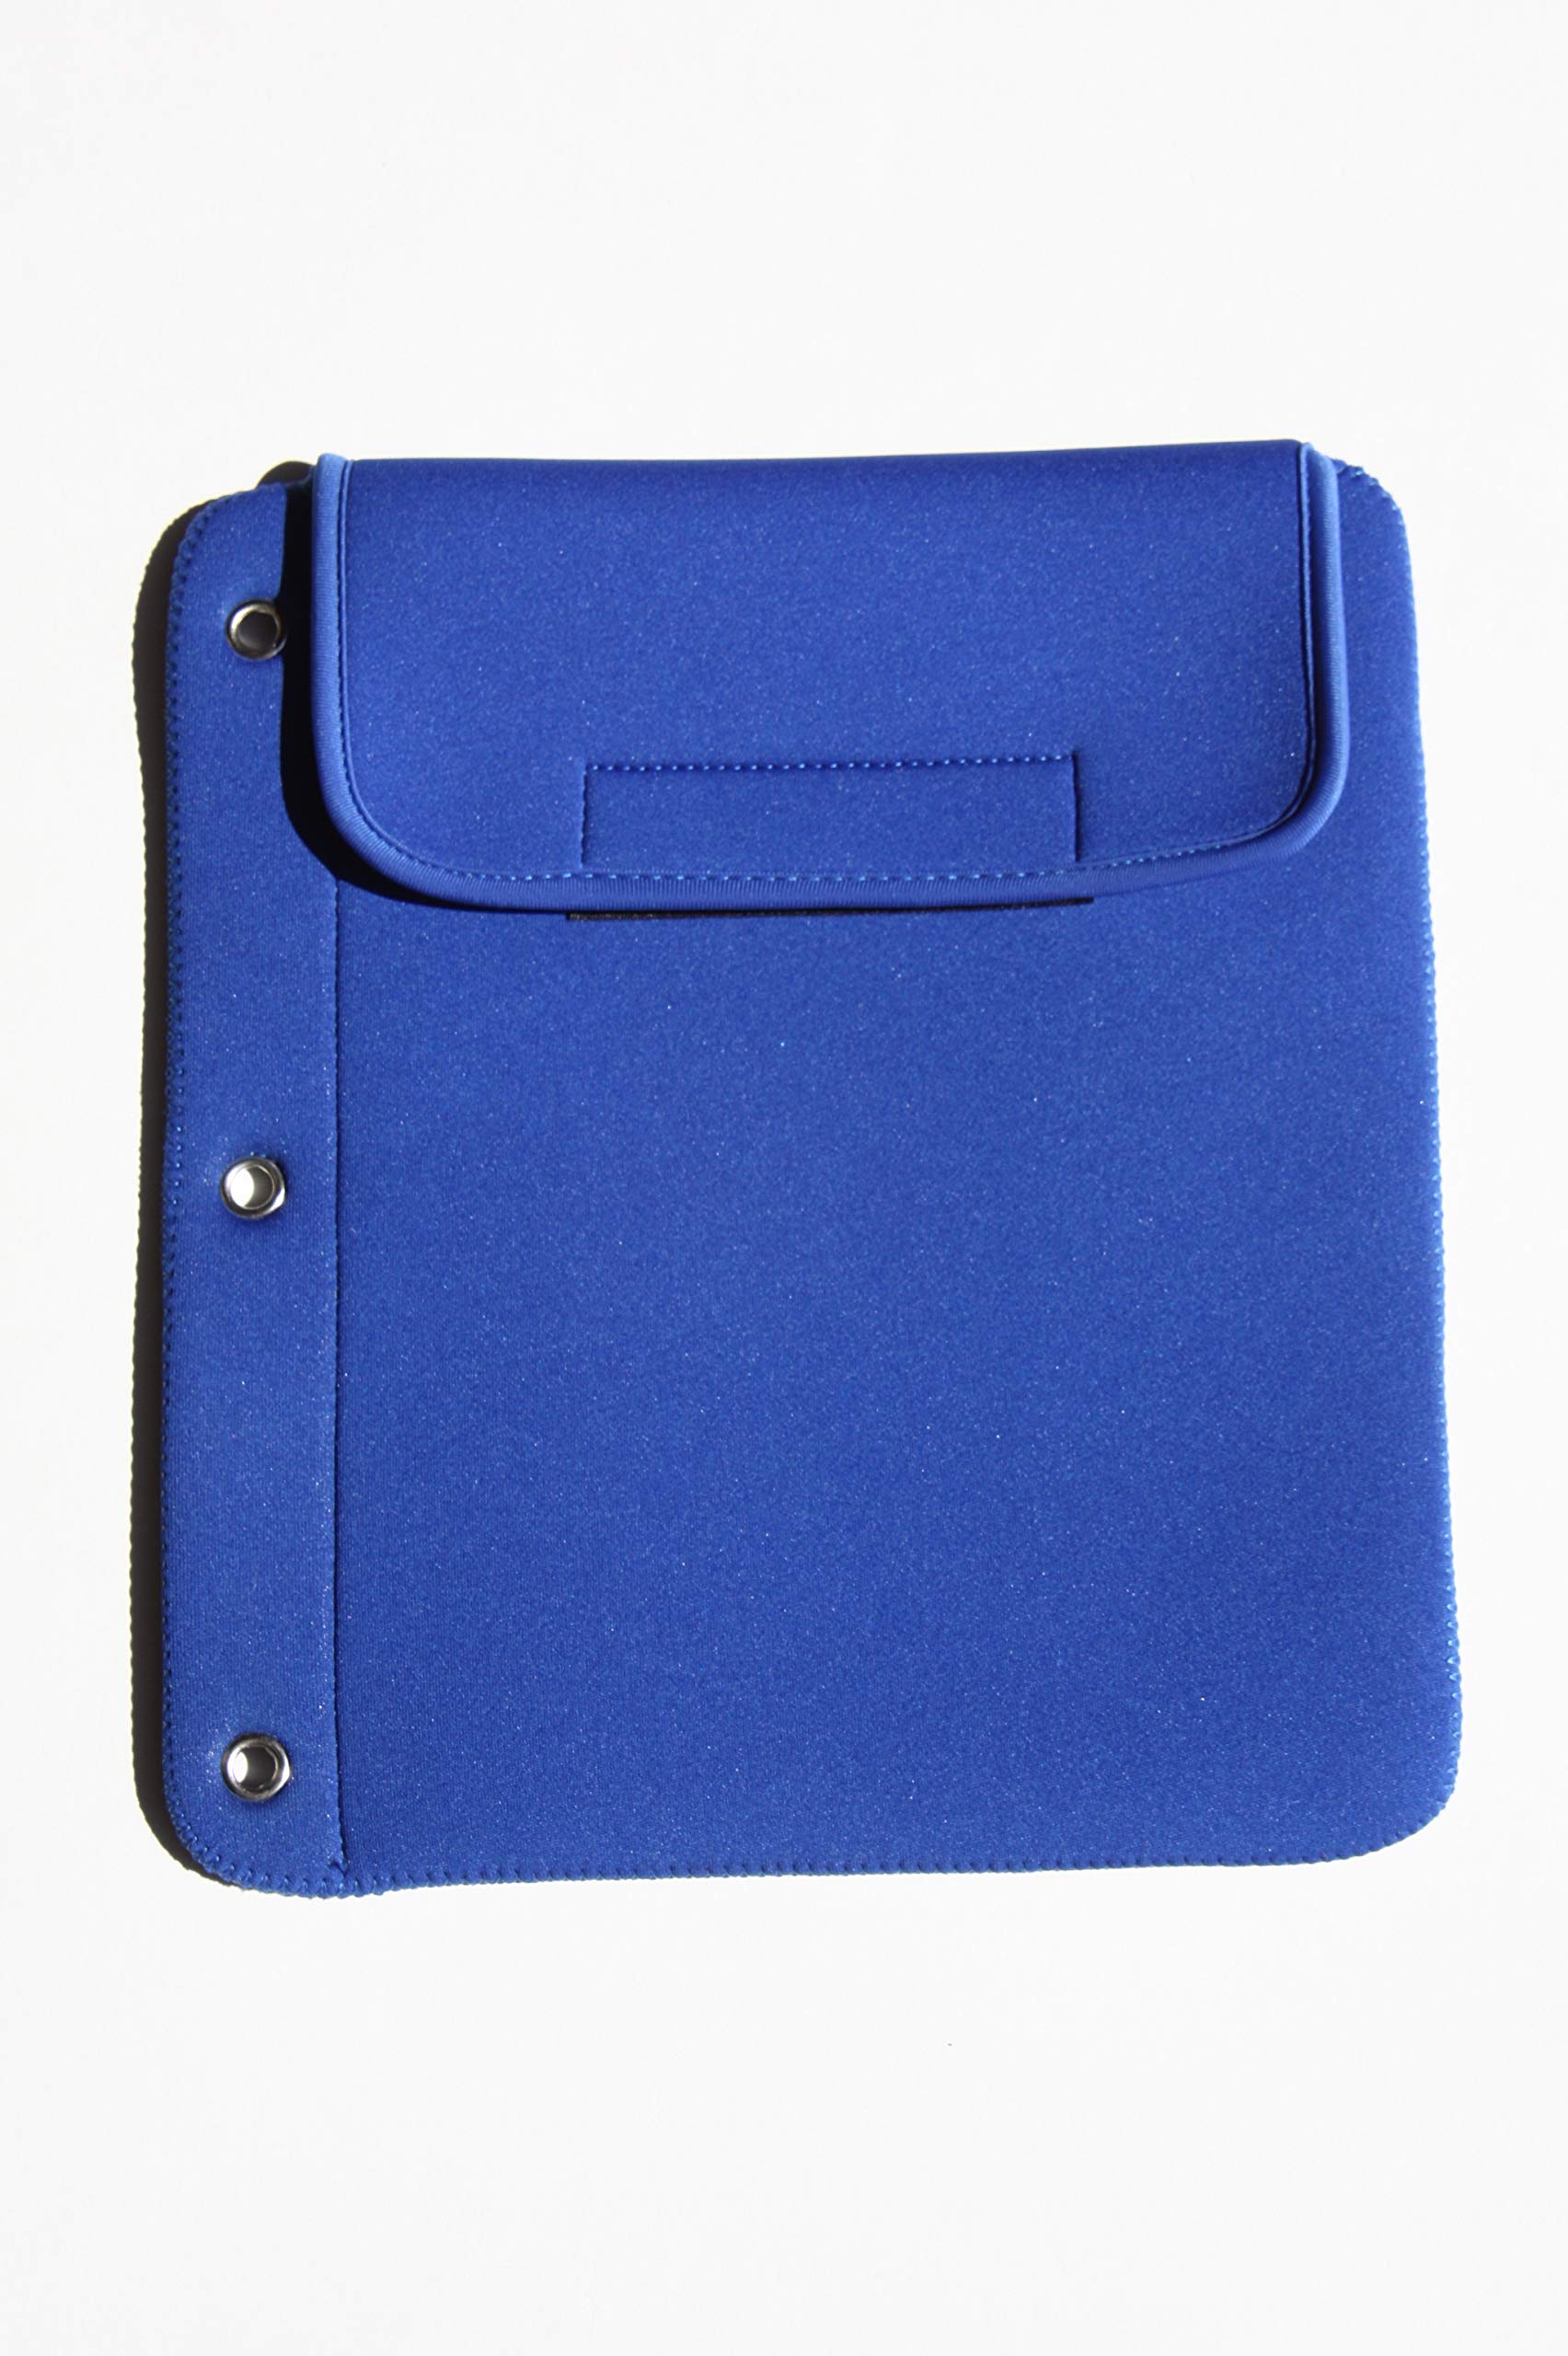 Tablet Cubbie Protective Patented 3-Ring Binder Neoprene Sleeve Case for iPad, e-Reader, Kindle, Tablets [iPad Air, iPad Mini, iPad Pro 9.7] Fits Over 40 Devices (Blue)